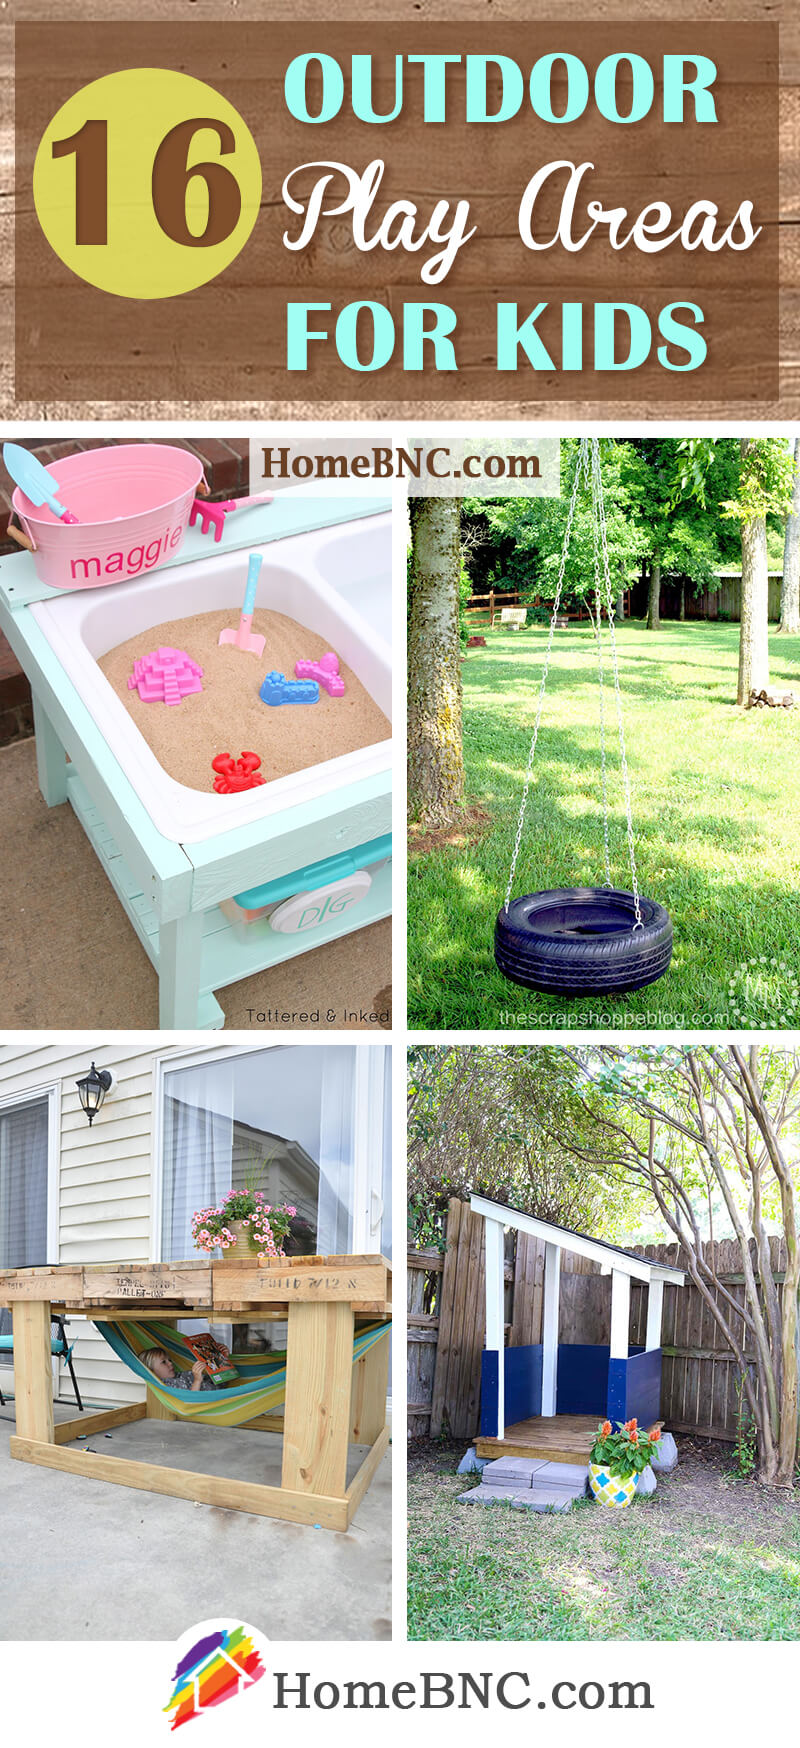 Outdoor Play Area Ideas for Kids